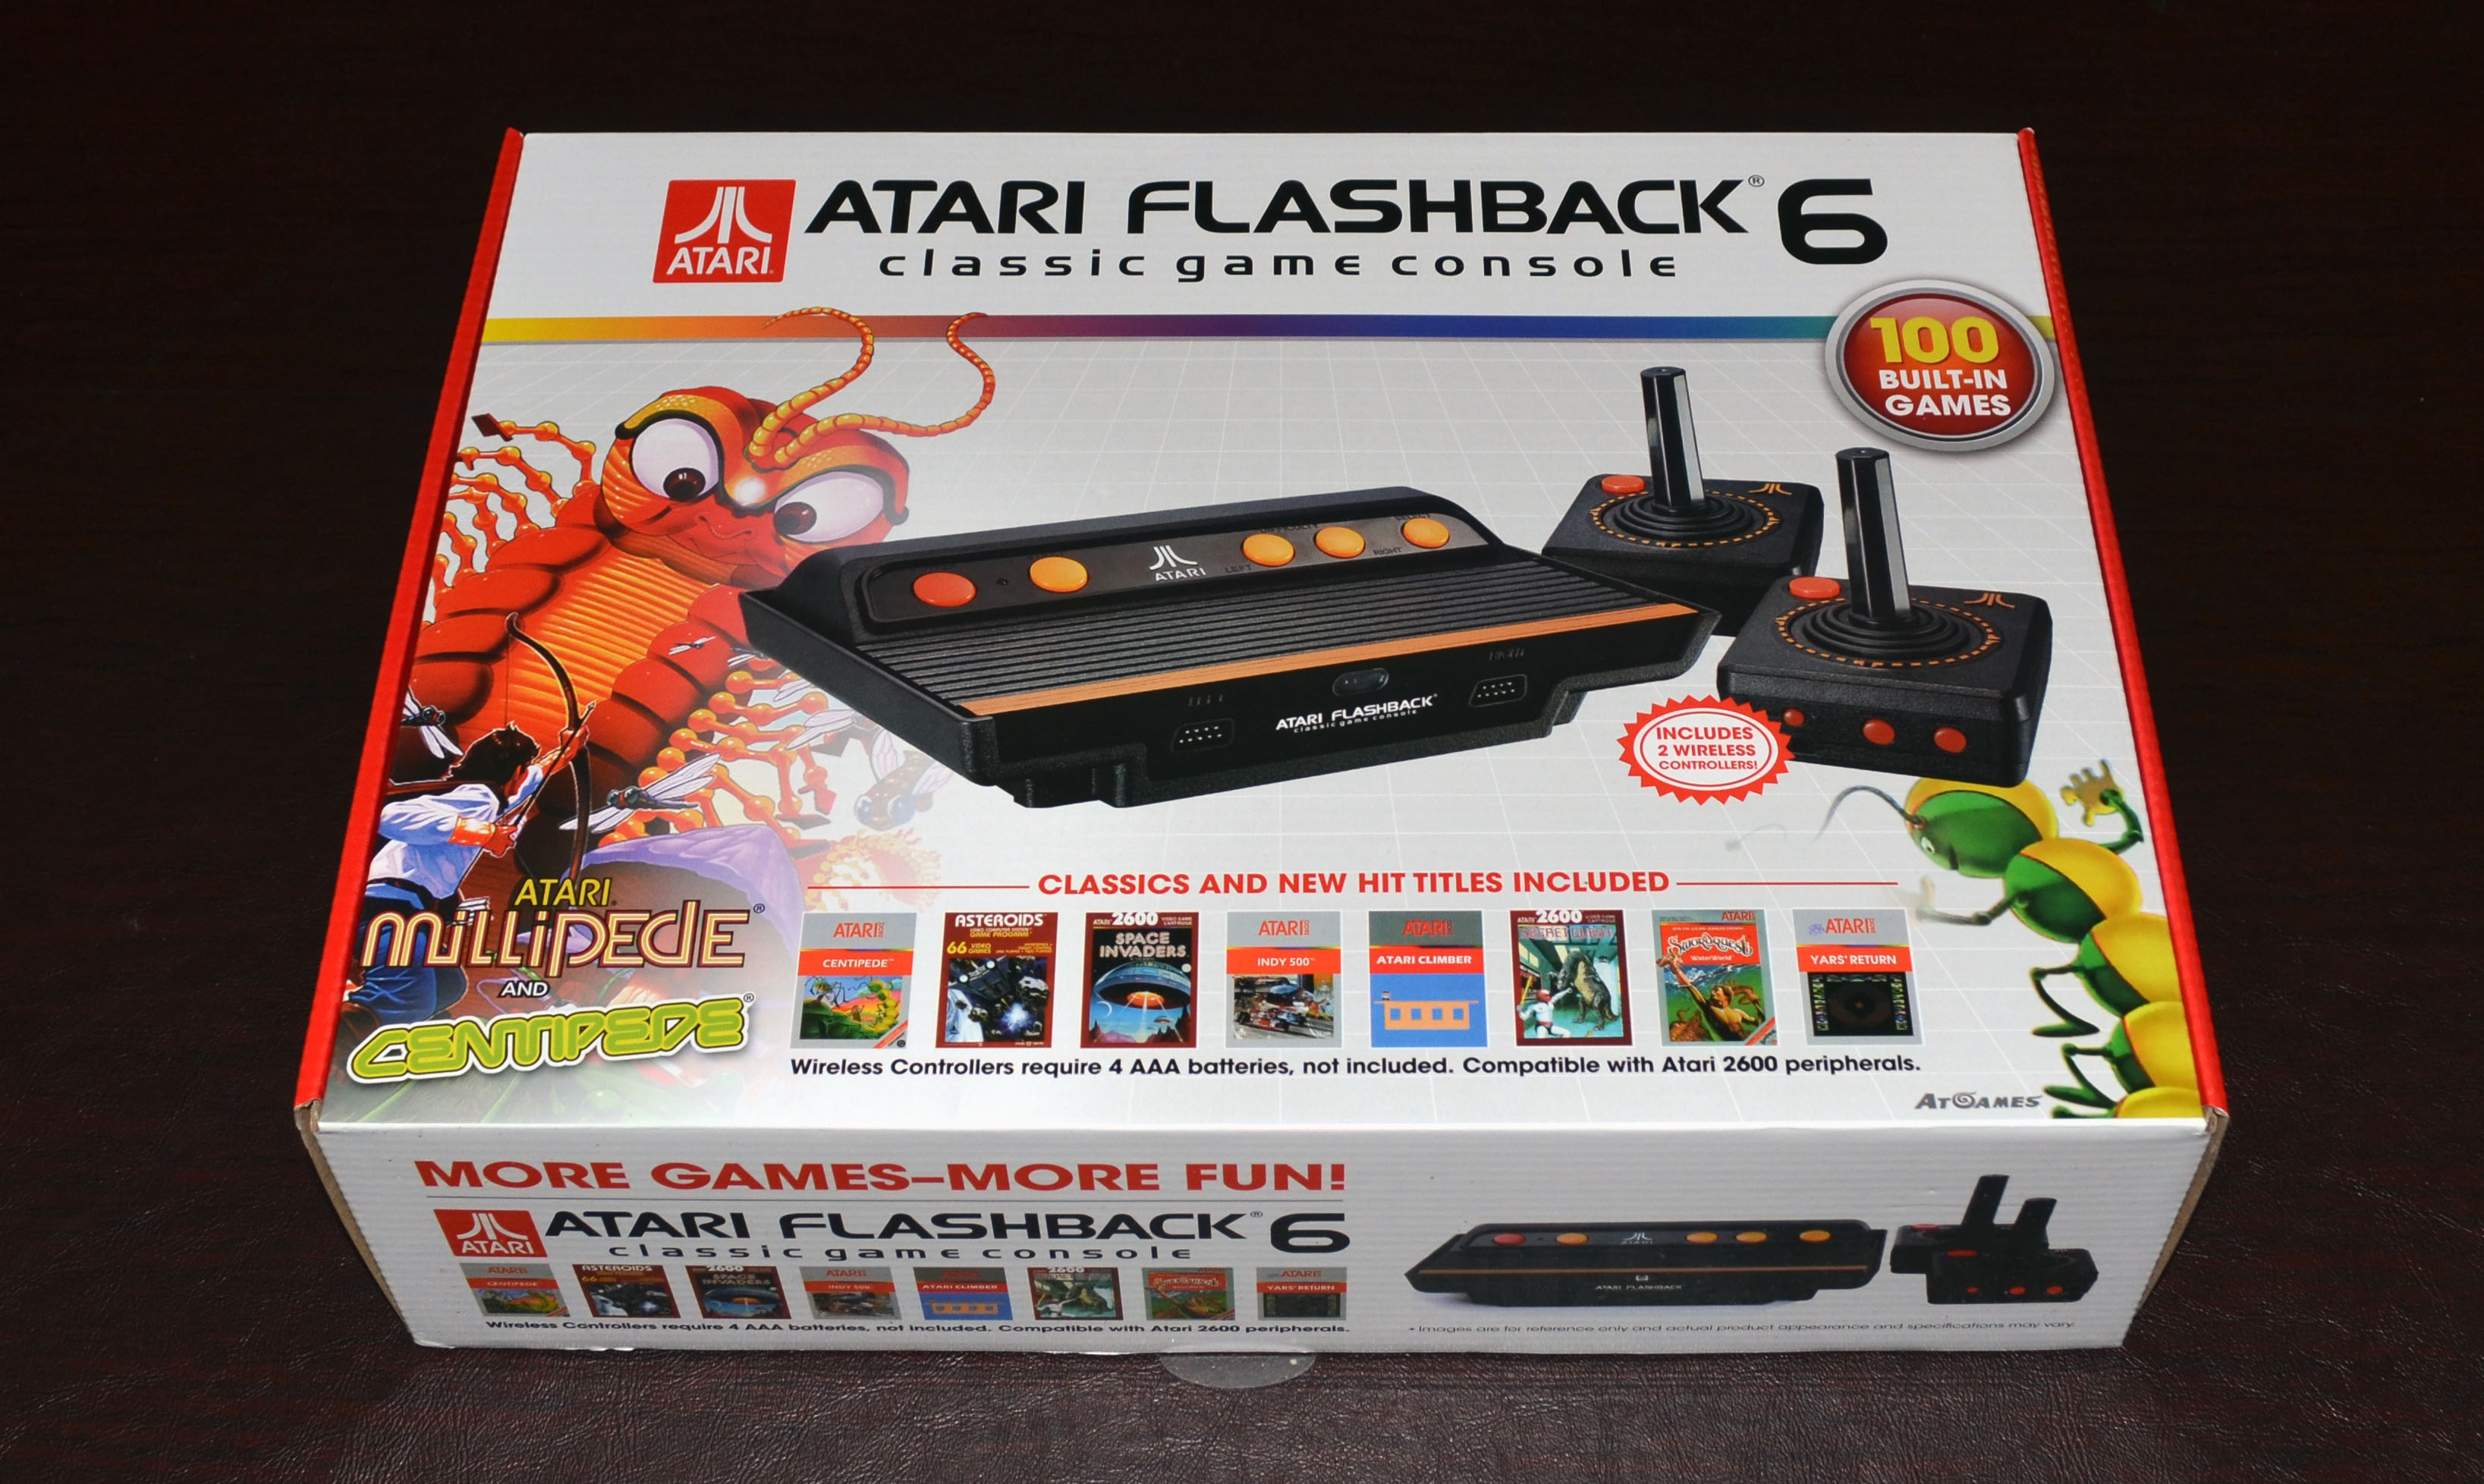 Review atgames atari flashback 6 includes videos - Atgames sega genesis classic game console game list ...